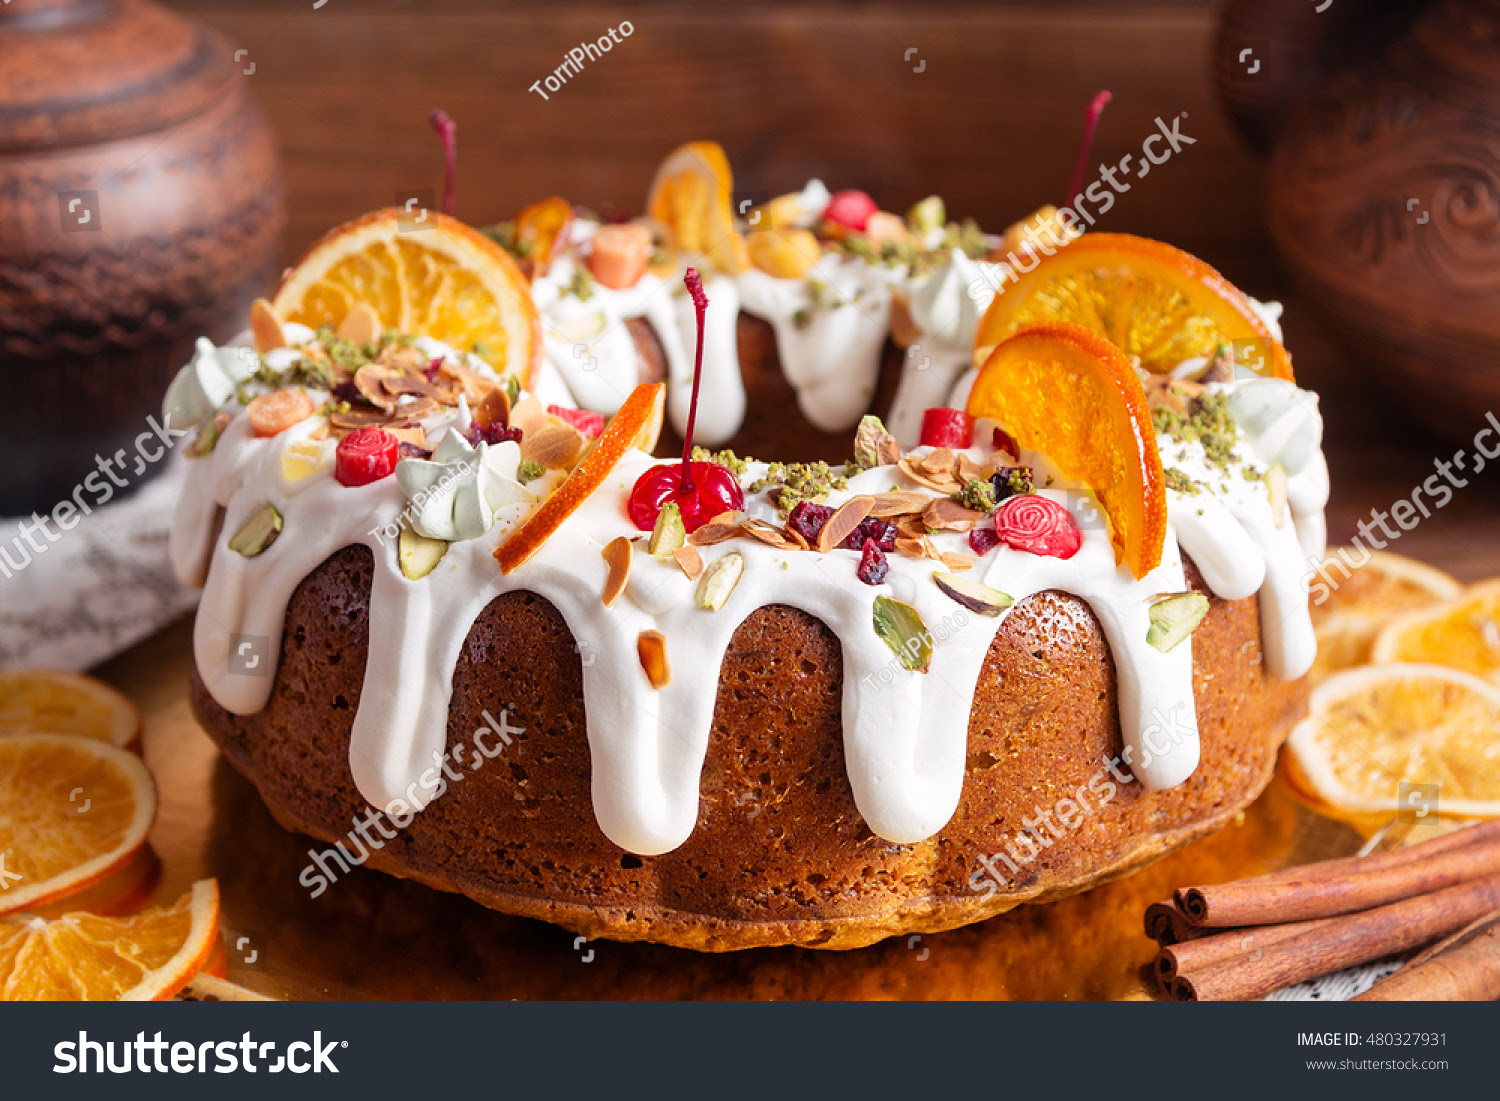 http://www.shutterstock.com/pic-480327931/stock-photo-traditional-bundt-cake-decorated-with-white-sugar-icing-and-fruit-on-rustic-wooden-background.html